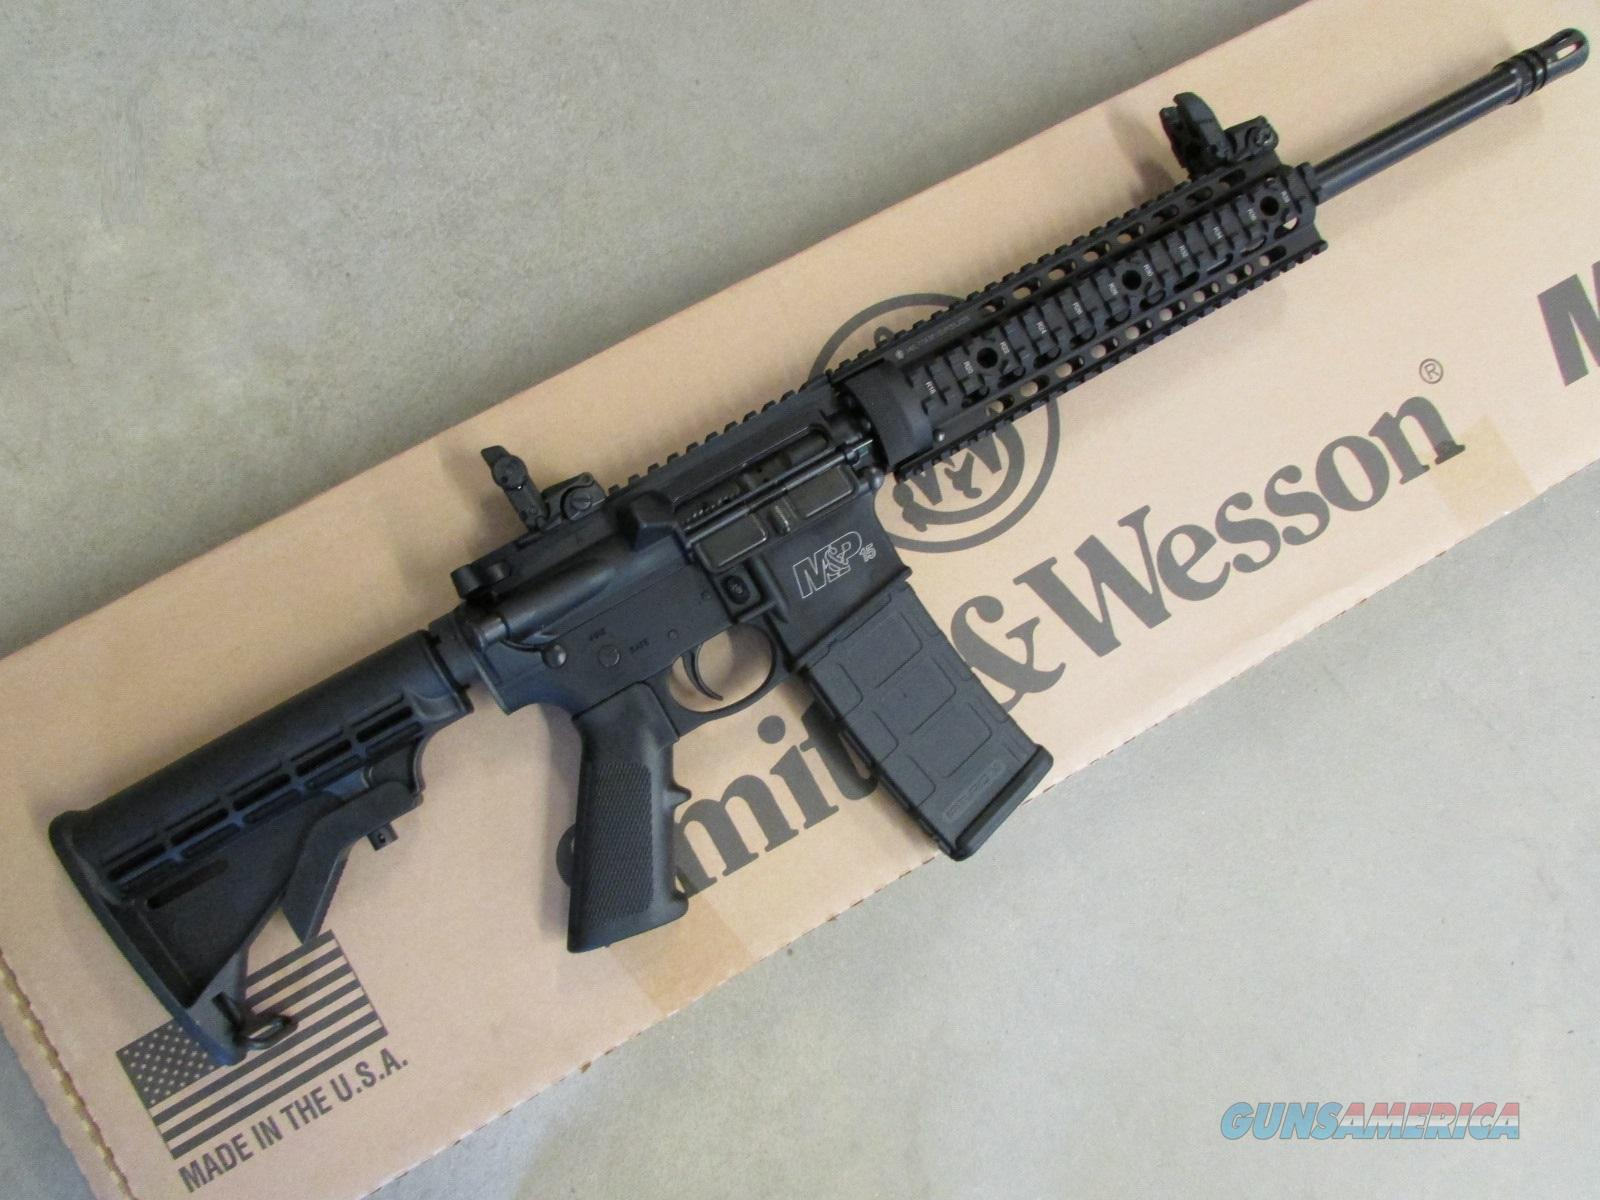 Smith & Wesson Model M&P15T Tactical Rail 5.56 / .223 811041  Guns > Rifles > Smith & Wesson Rifles > M&P